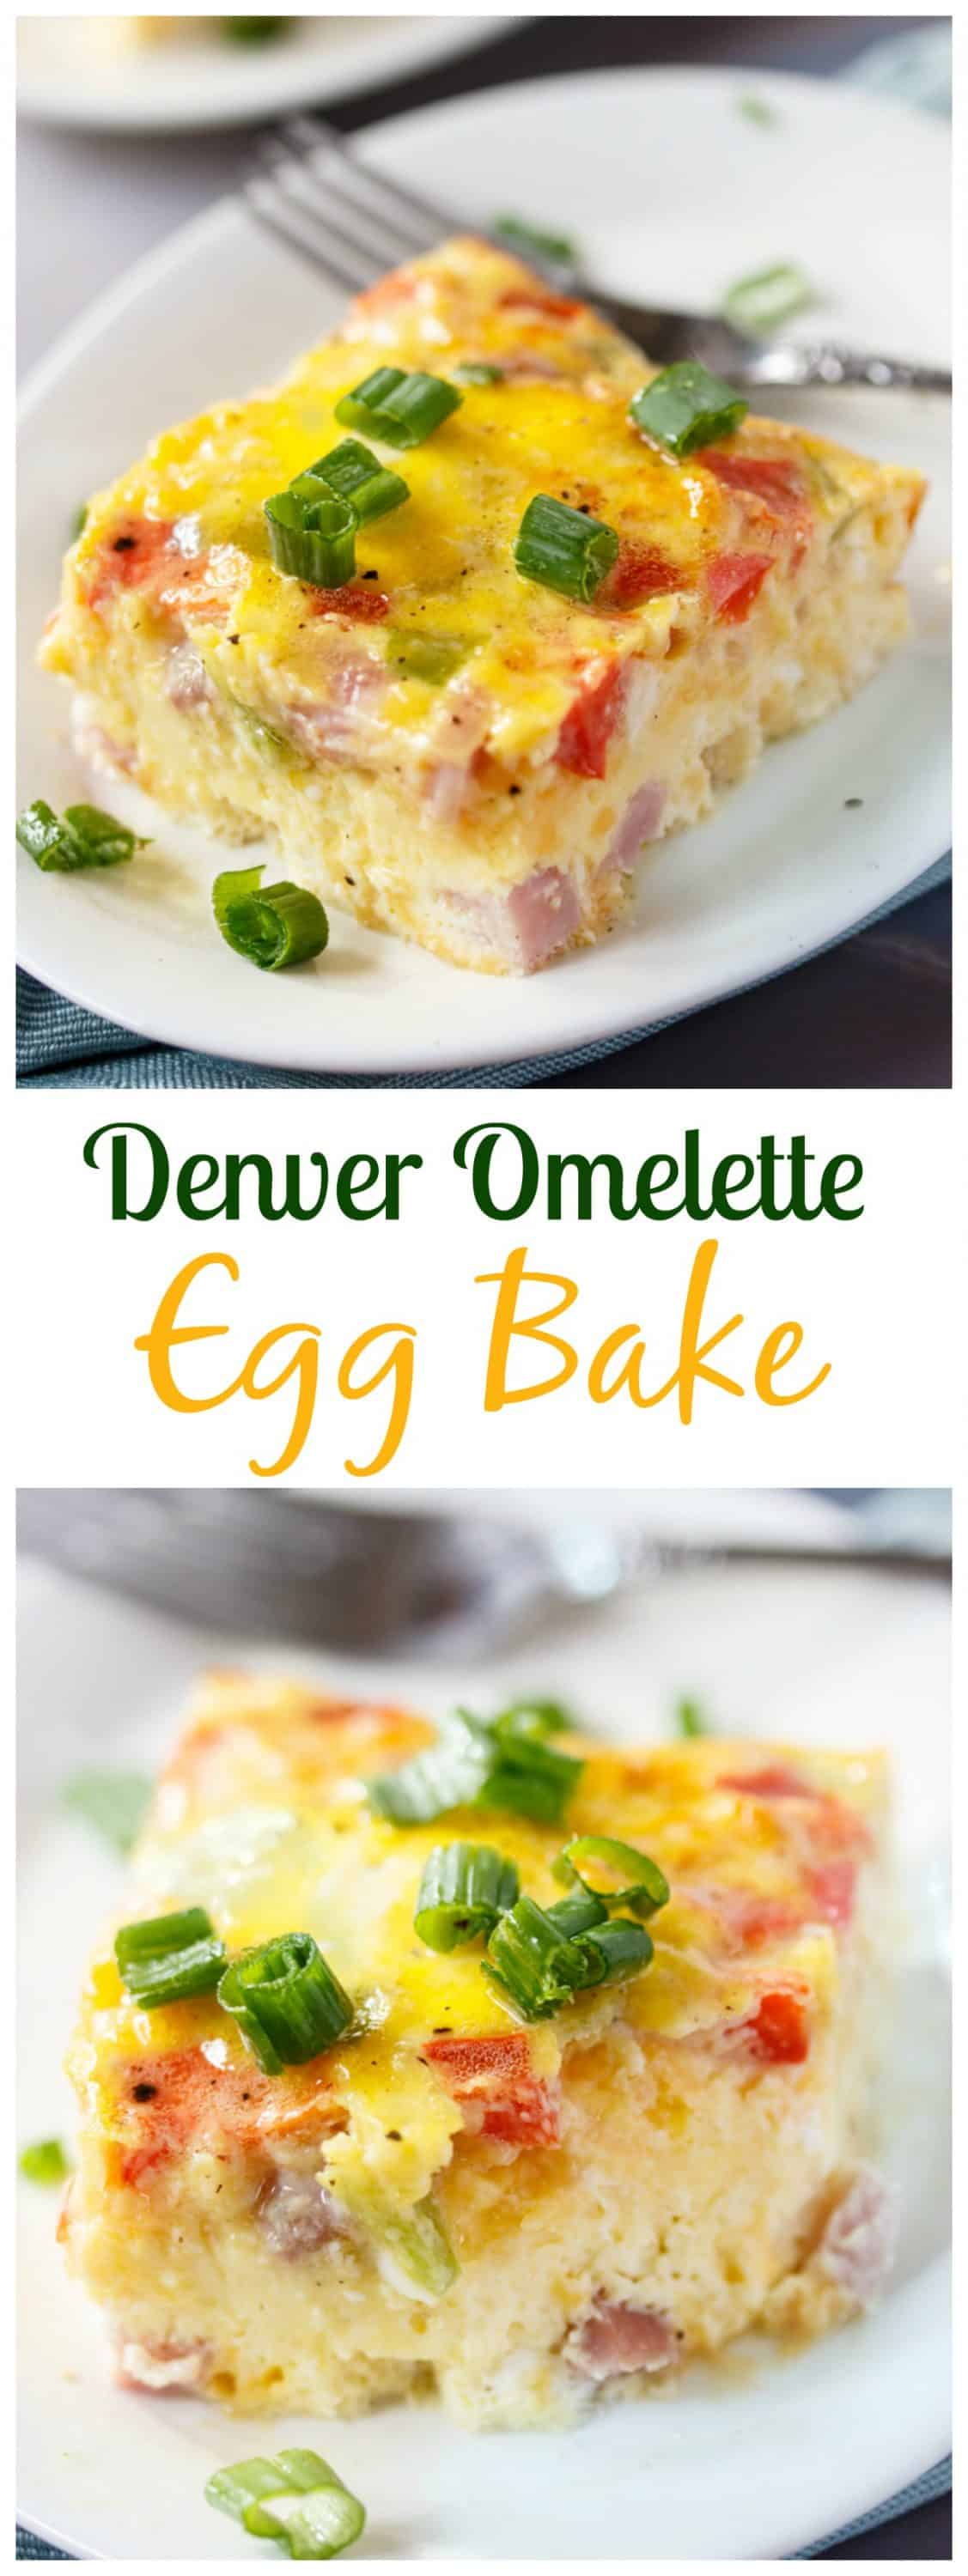 denver-omelette-egg-bake